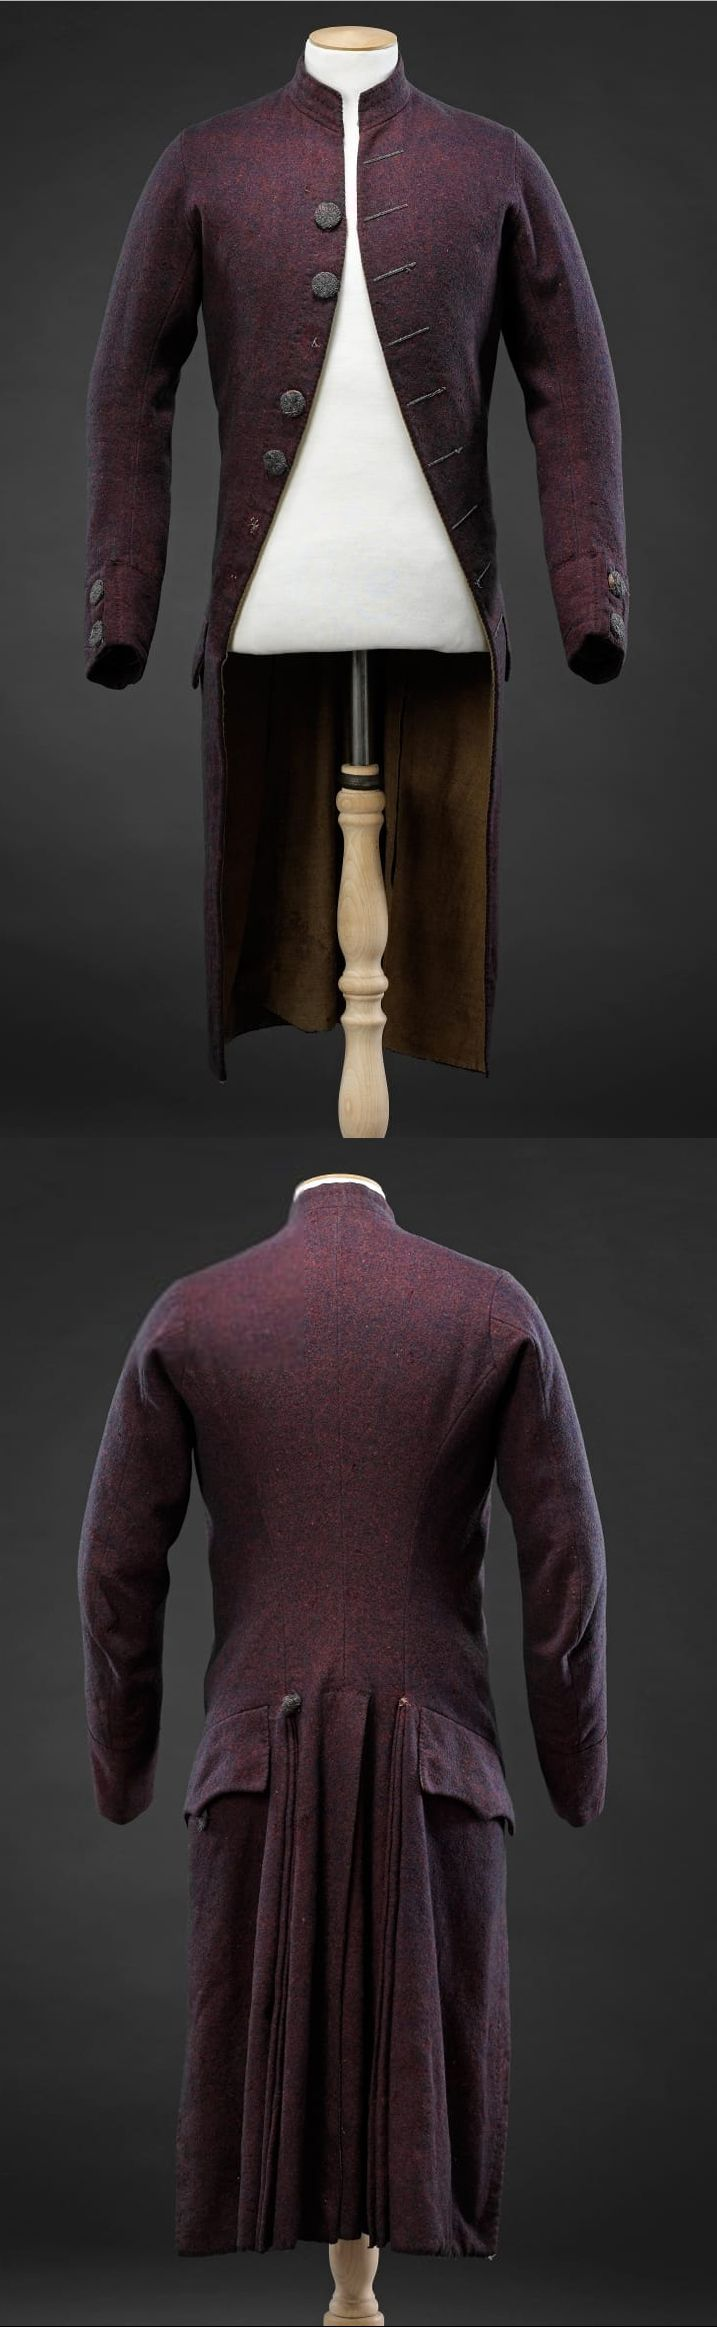 Gentleman's Frock coat, 1790s, Wool lined with linen, England | John Bright Collection